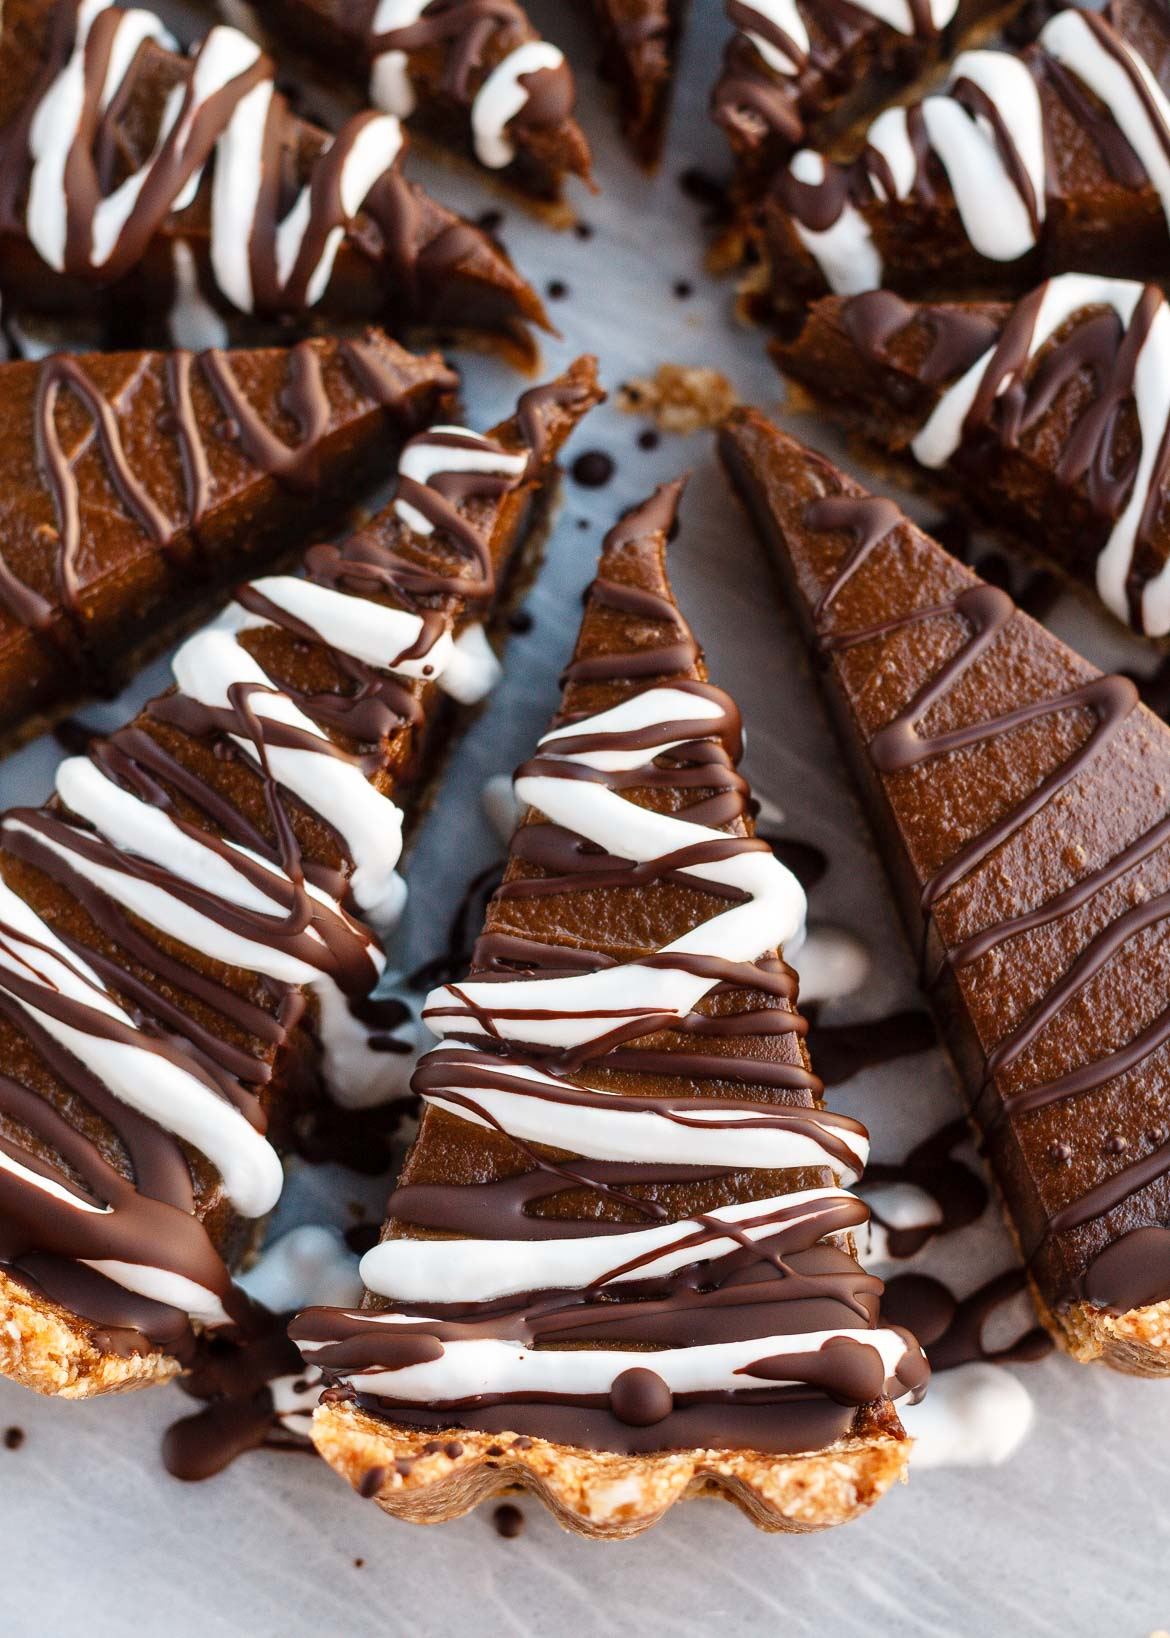 Chocolate Avocado Tart